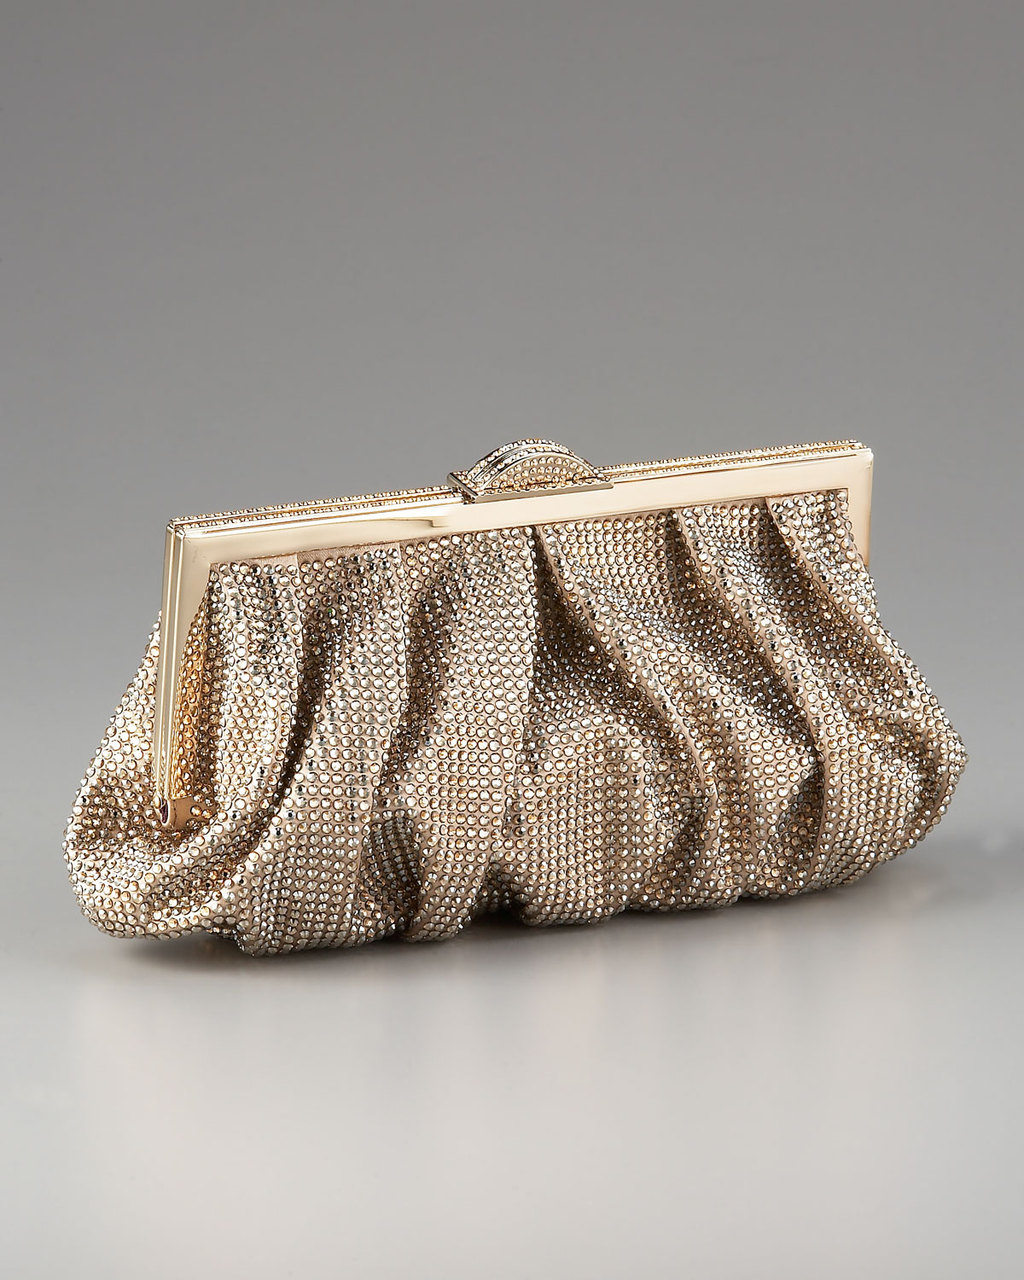 Wedding-splurge-top-10-for-fall-2012-judith-leiber-clutch.full